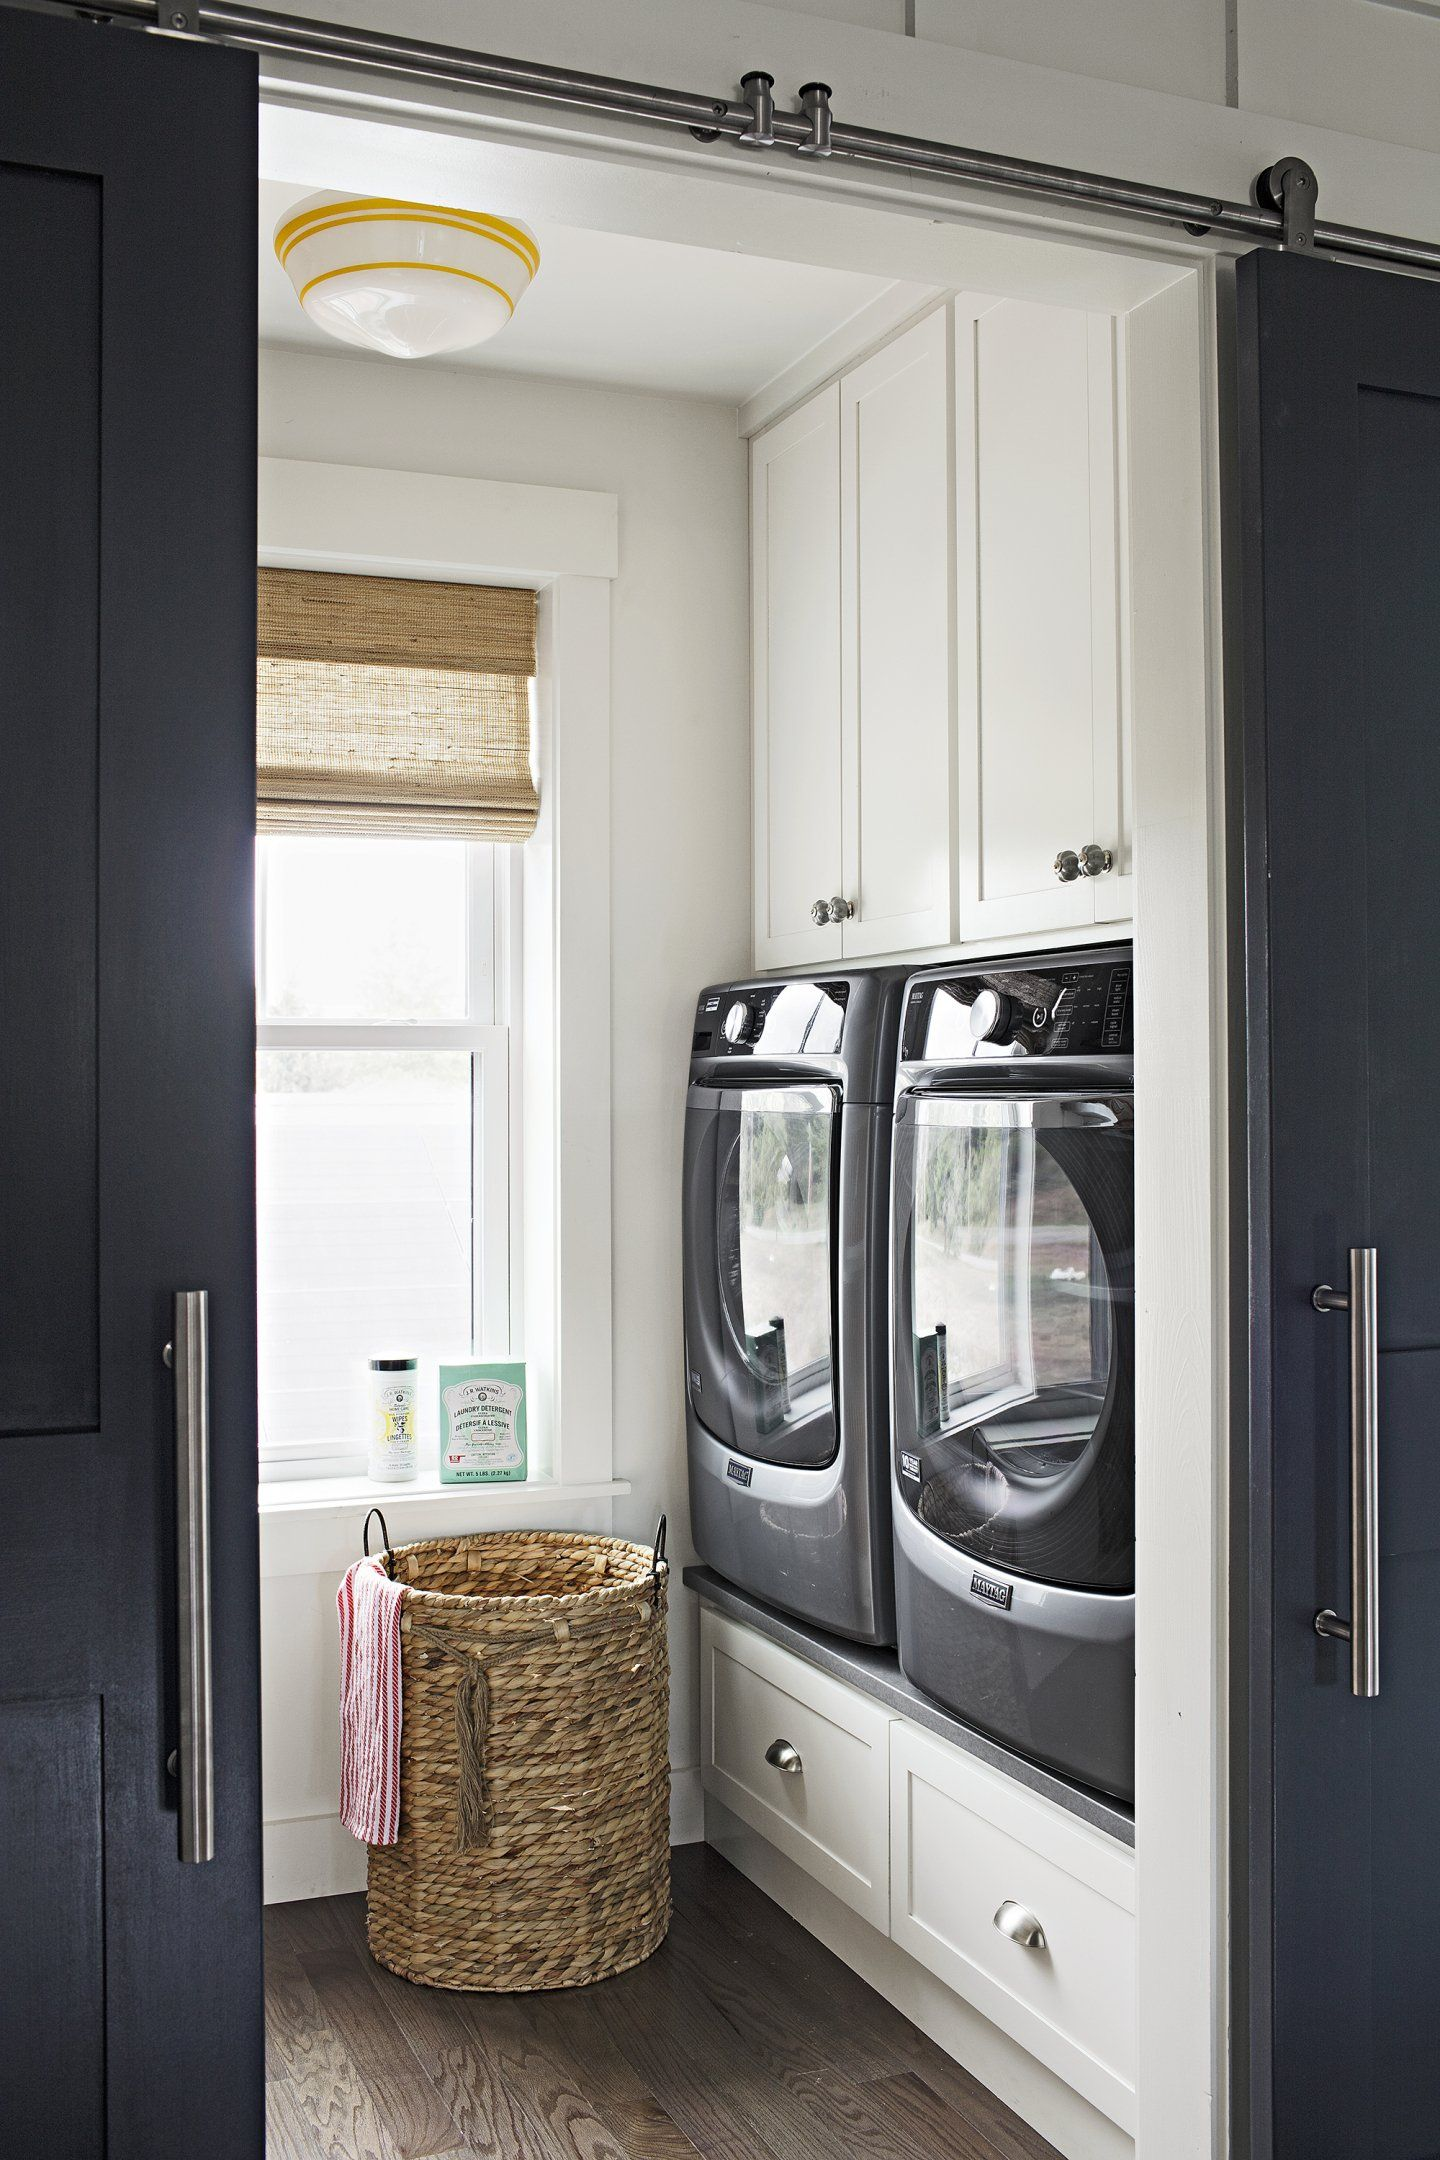 Laundry Overhead Cabinets